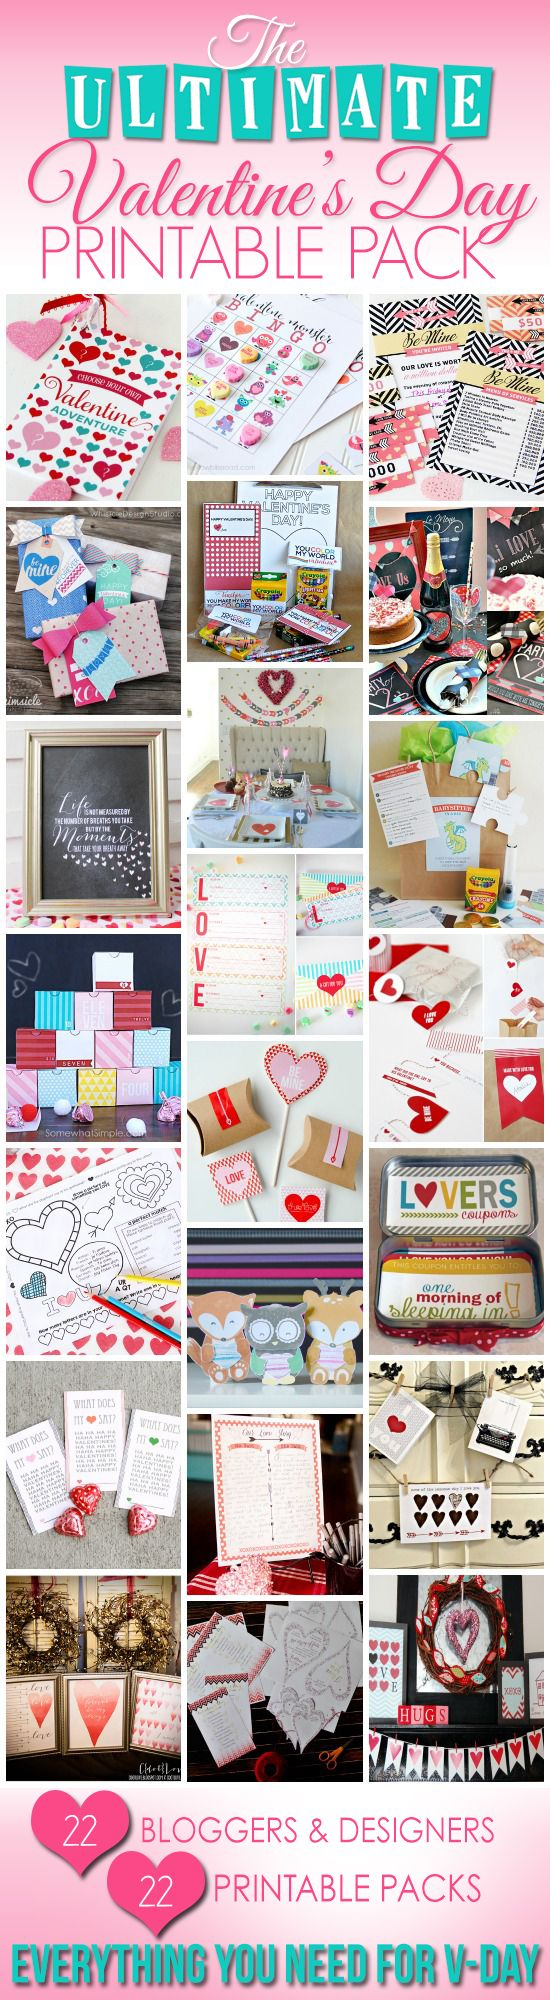 121 Pages of cute Valentine's Printables for ONLY $7?!!!  Anything and everything anyone would ever need to pull off the best Valentine's Day ever.